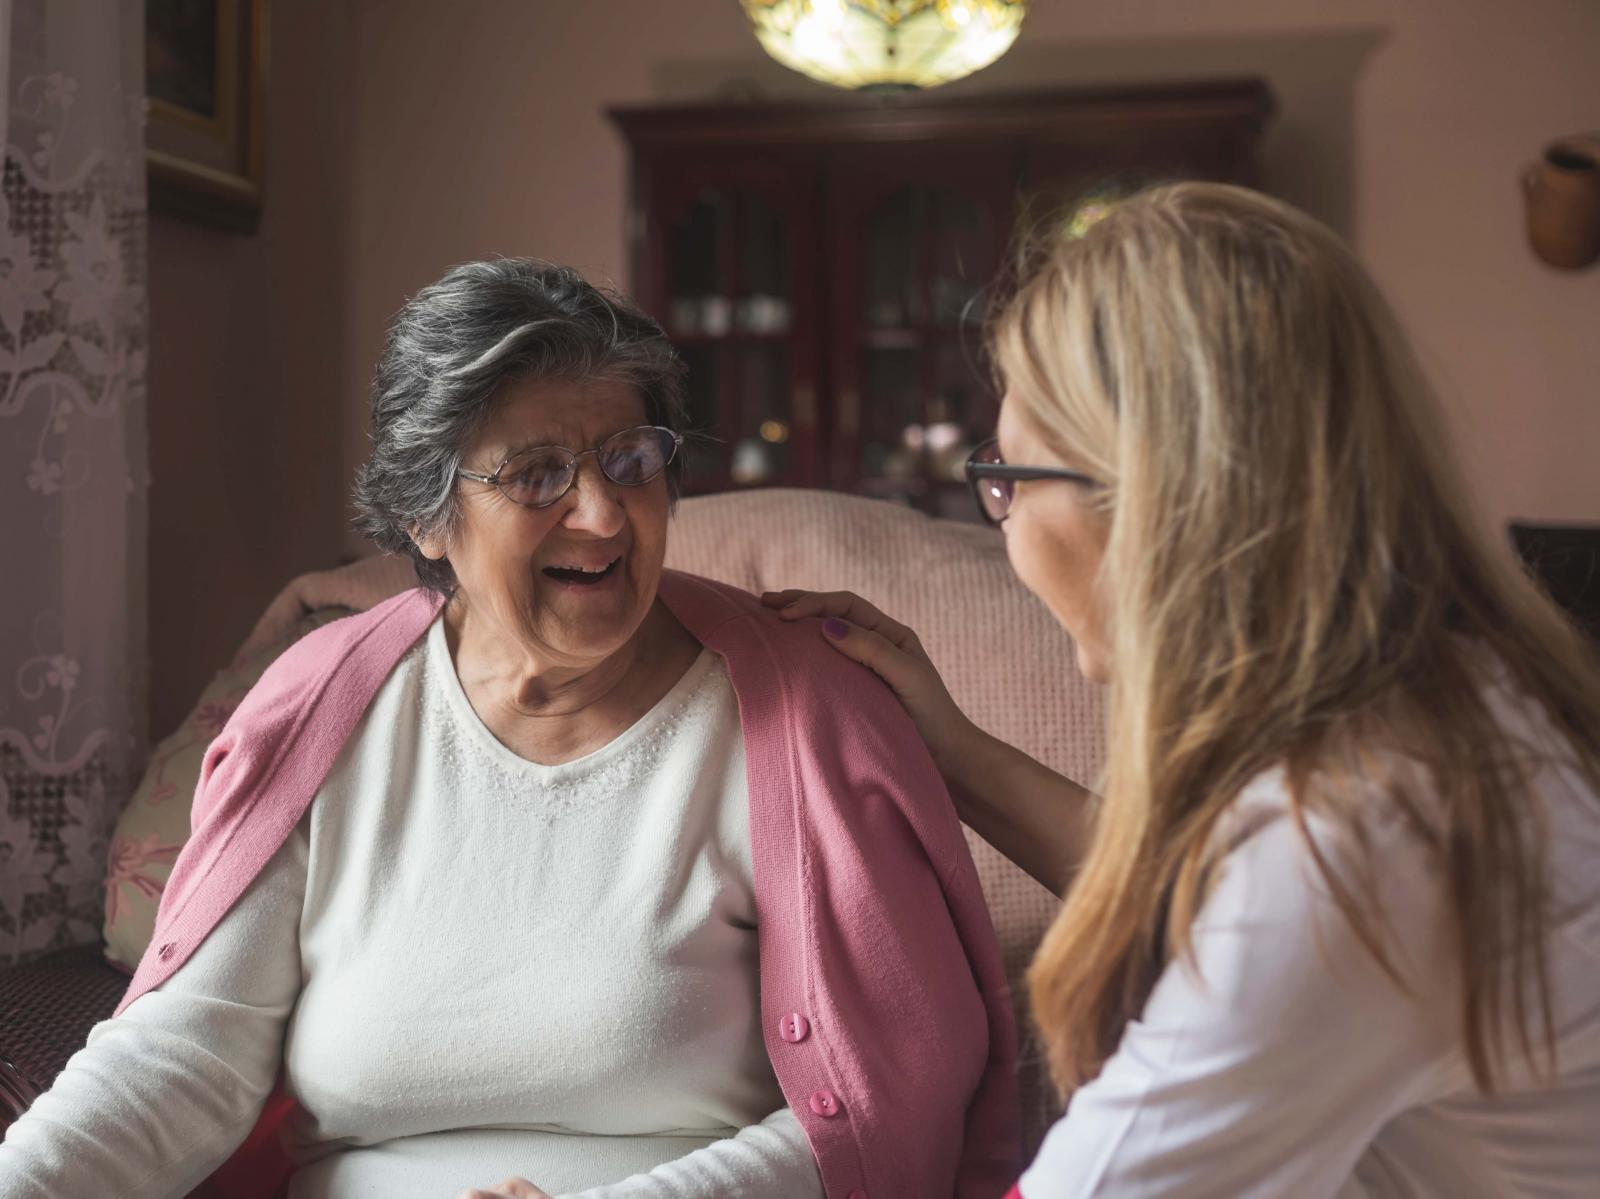 Carer and resident in a home